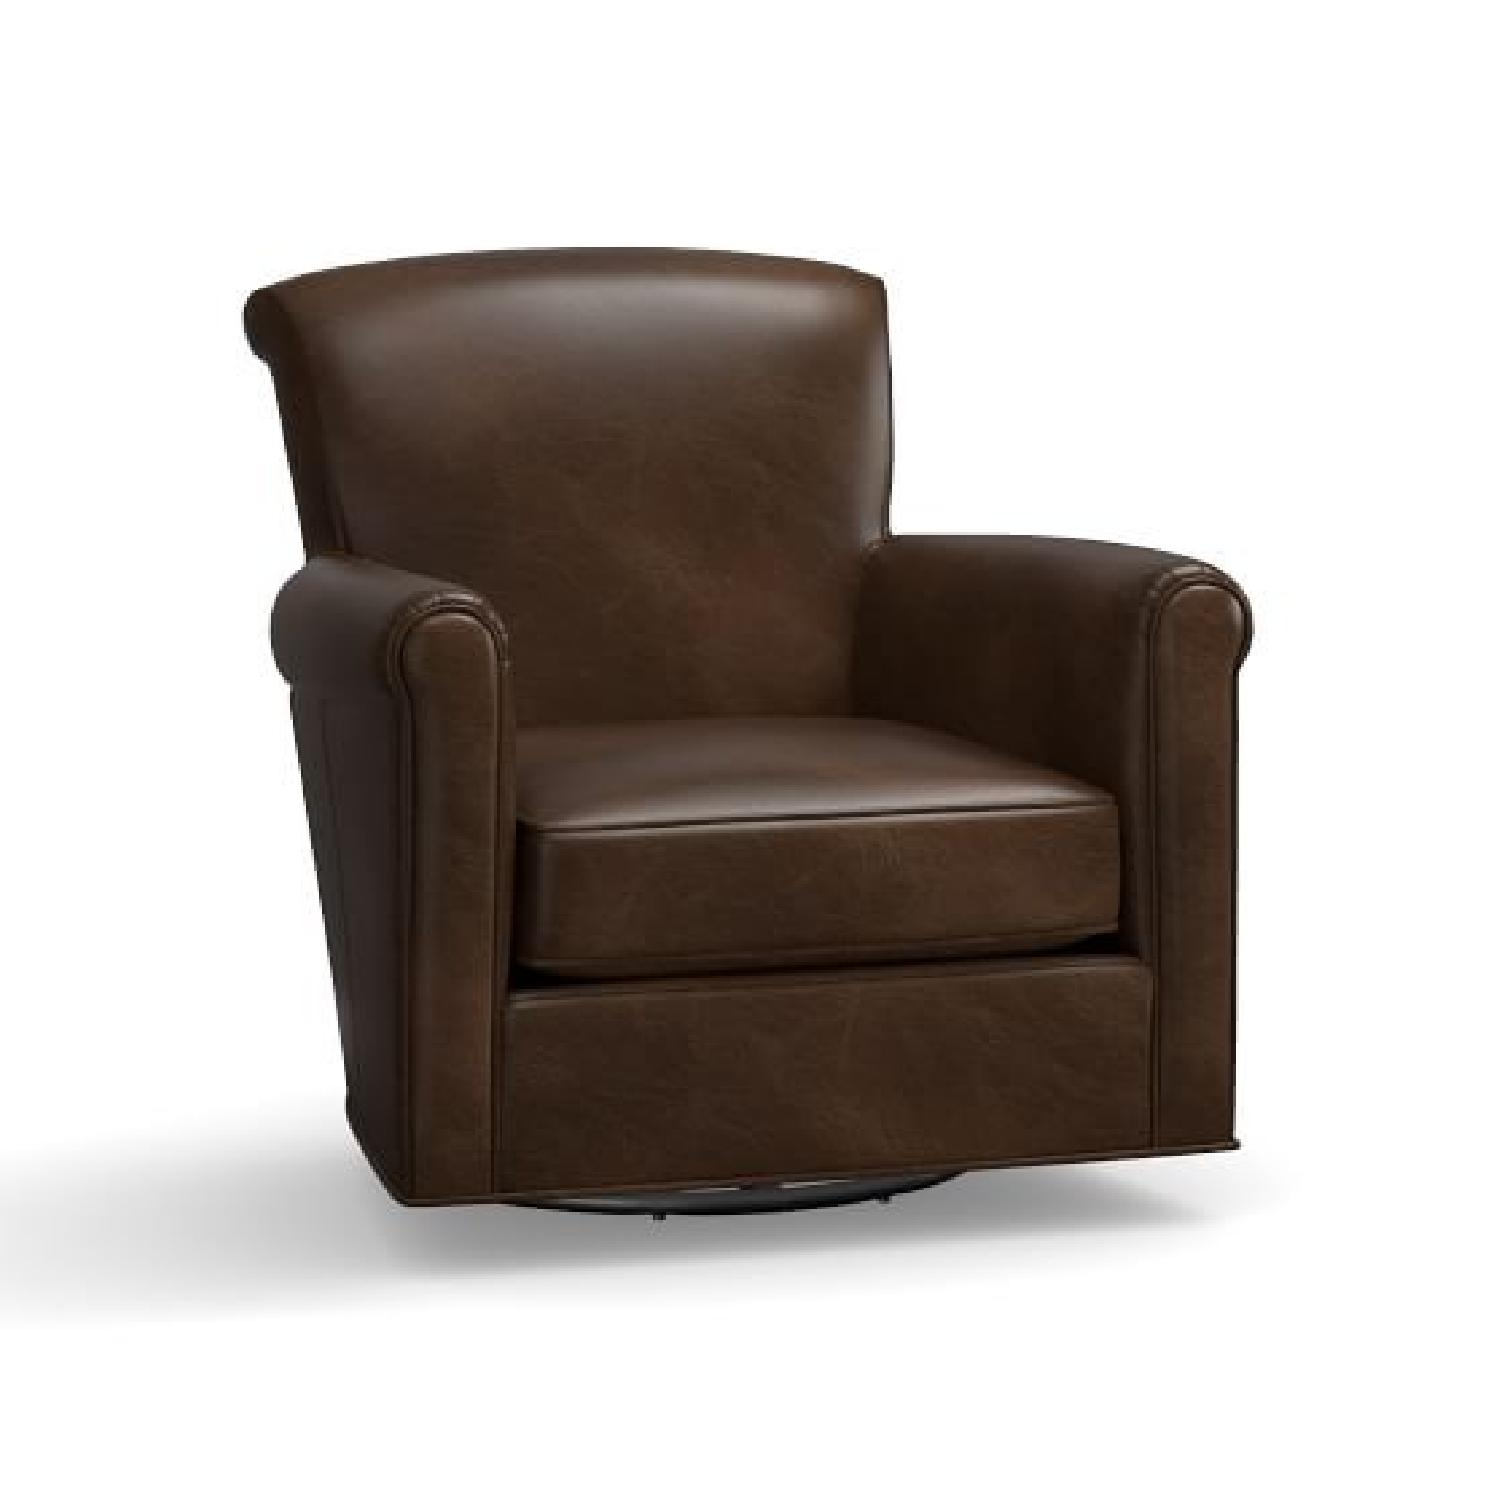 Awesome Pottery Barn Irving Leather Swivel Chairs Aptdeco Gmtry Best Dining Table And Chair Ideas Images Gmtryco